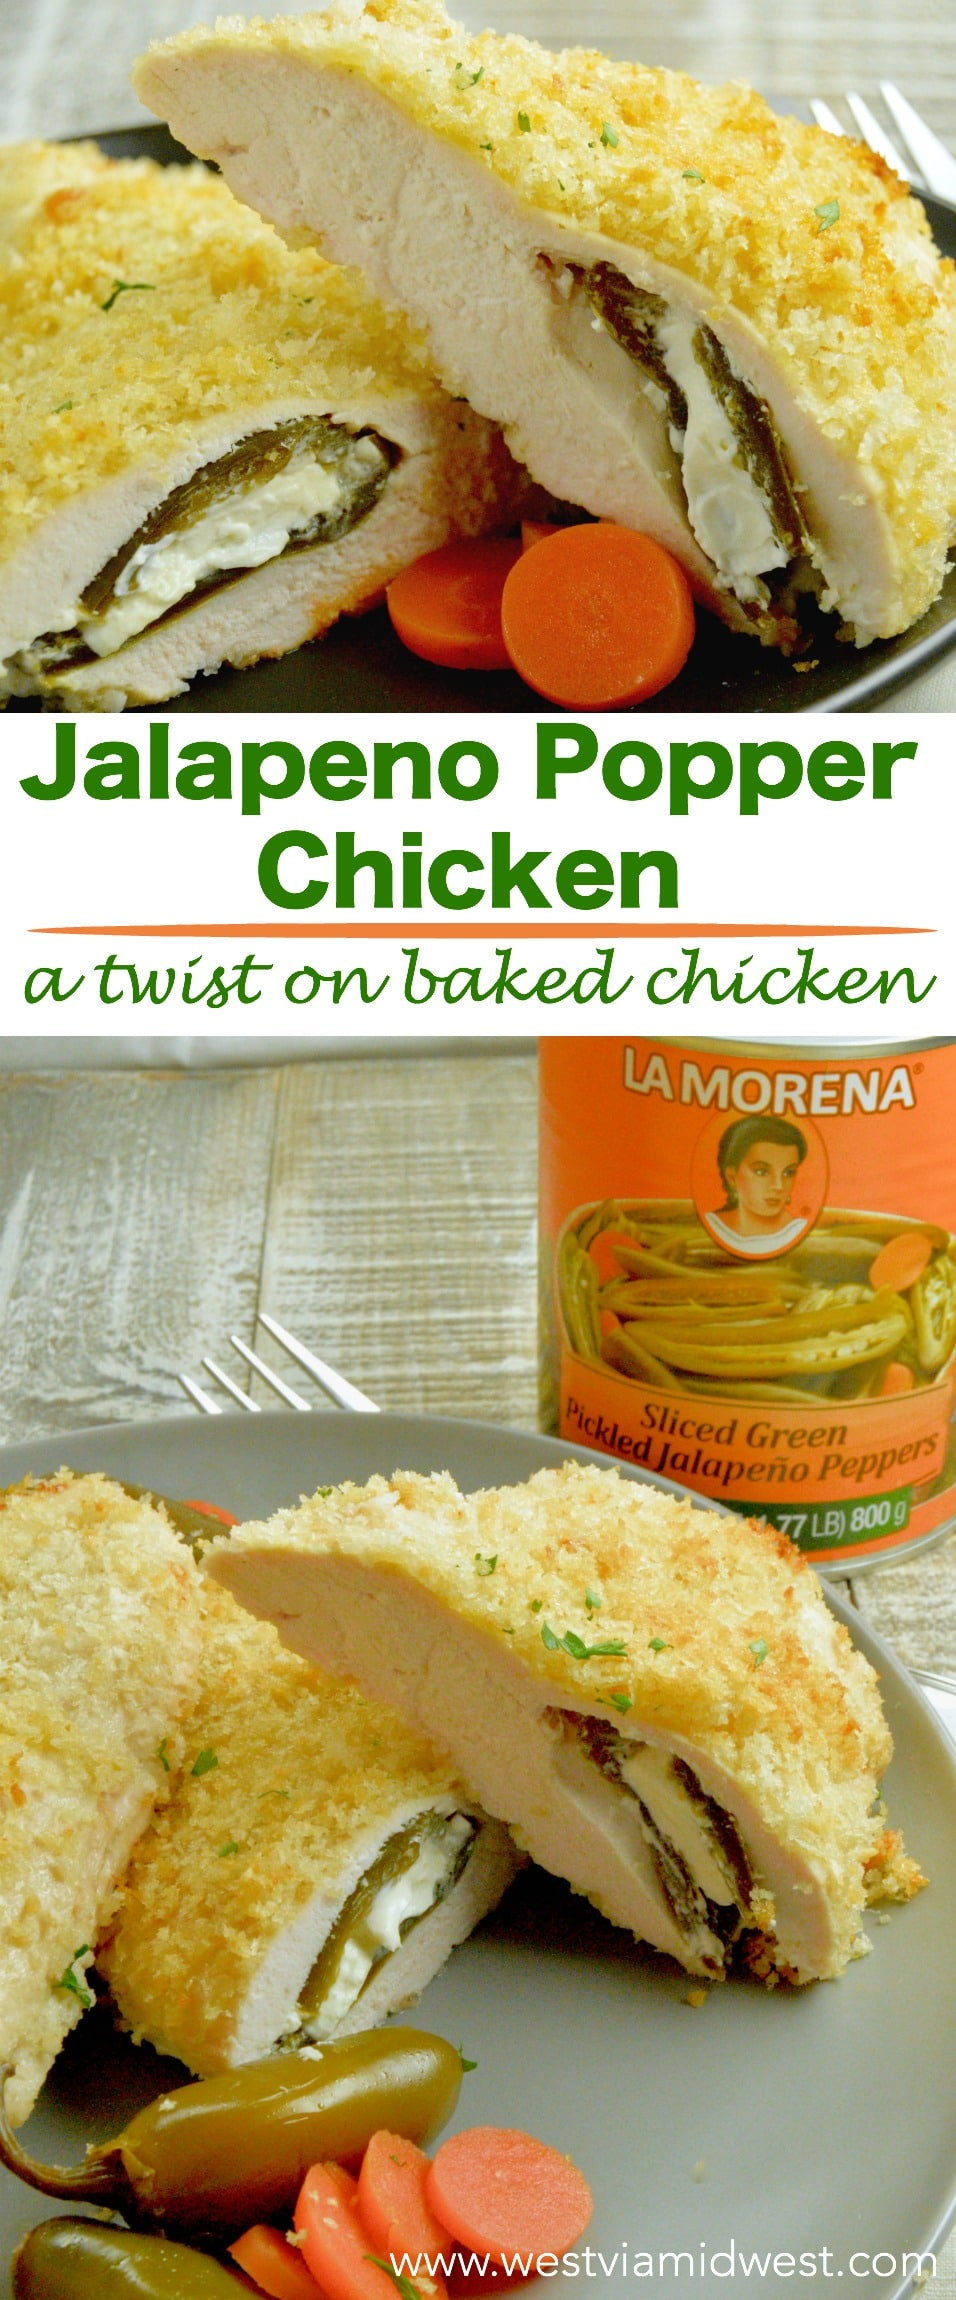 Partnered with LA MORENA® Jalapeno Popper Chicken is a twist on crispy baked chicken. Stuffed with cream cheese poppers with slight heat give every day meals a new take! #VivaLaMorena #RediscoverLaMorena